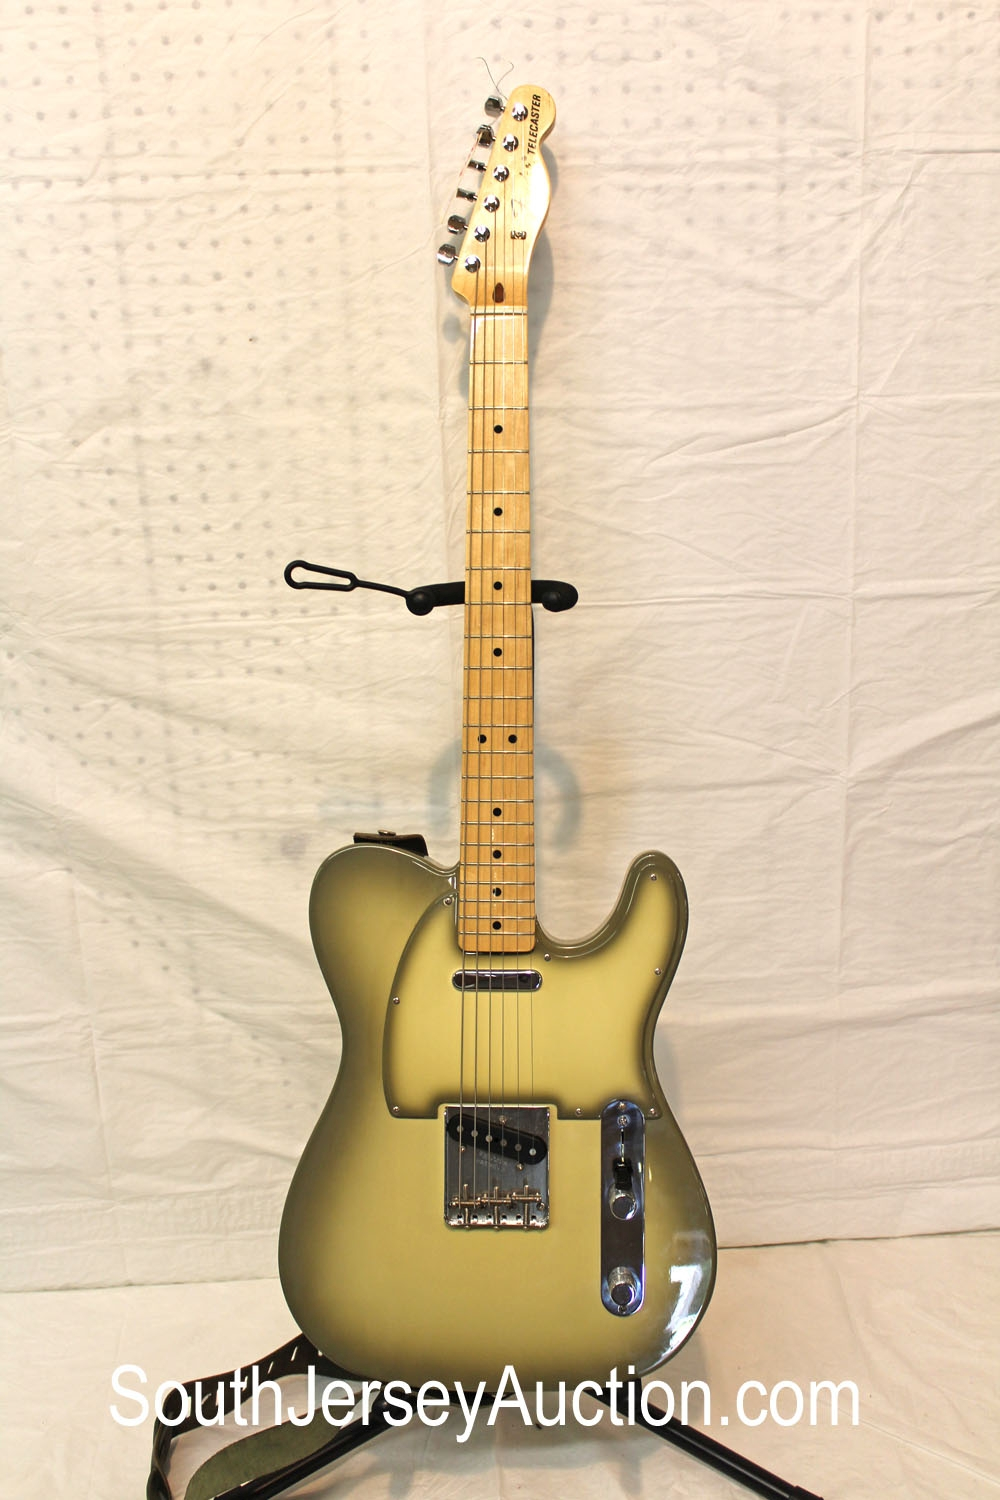 2011 Fender FSR Telecaster in the Odd Color of Antigua, made in Mexico, Special Edition, MX12101304, in very good condition and soft gig bag